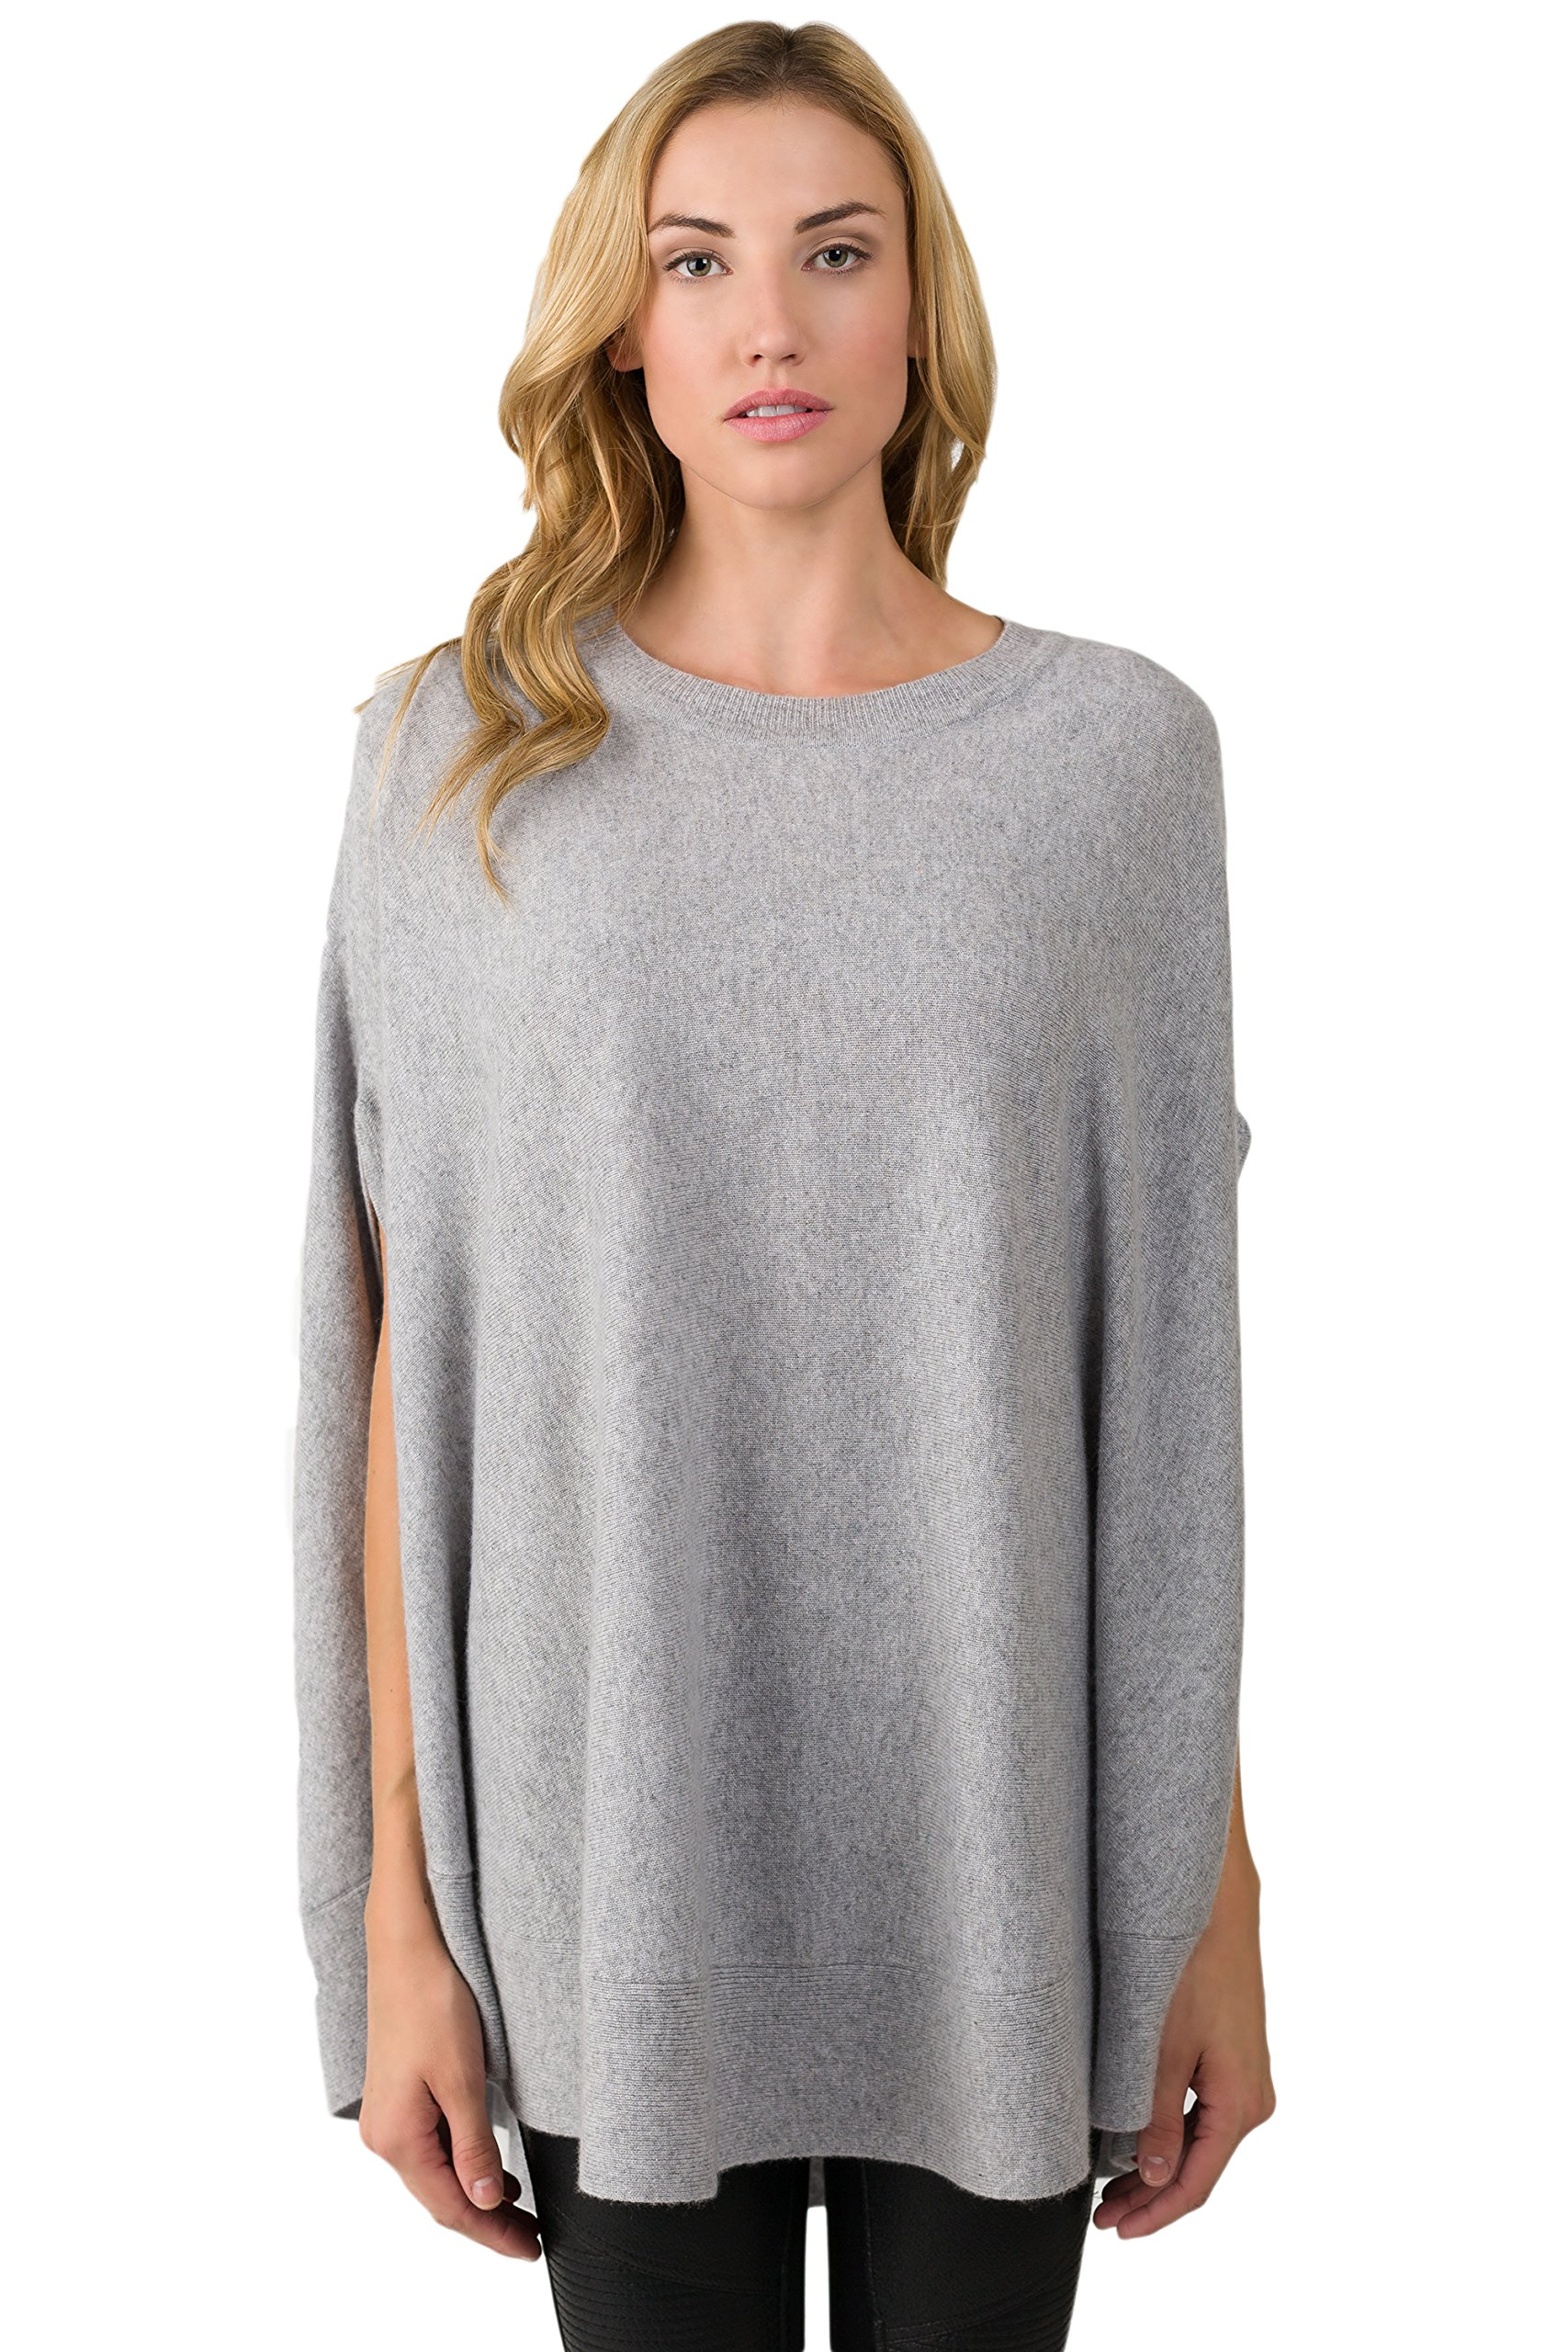 J CASHMERE Women's 100% Cashmere Oversized Laid-Back Poncho Sweater Grey by J CASHMERE